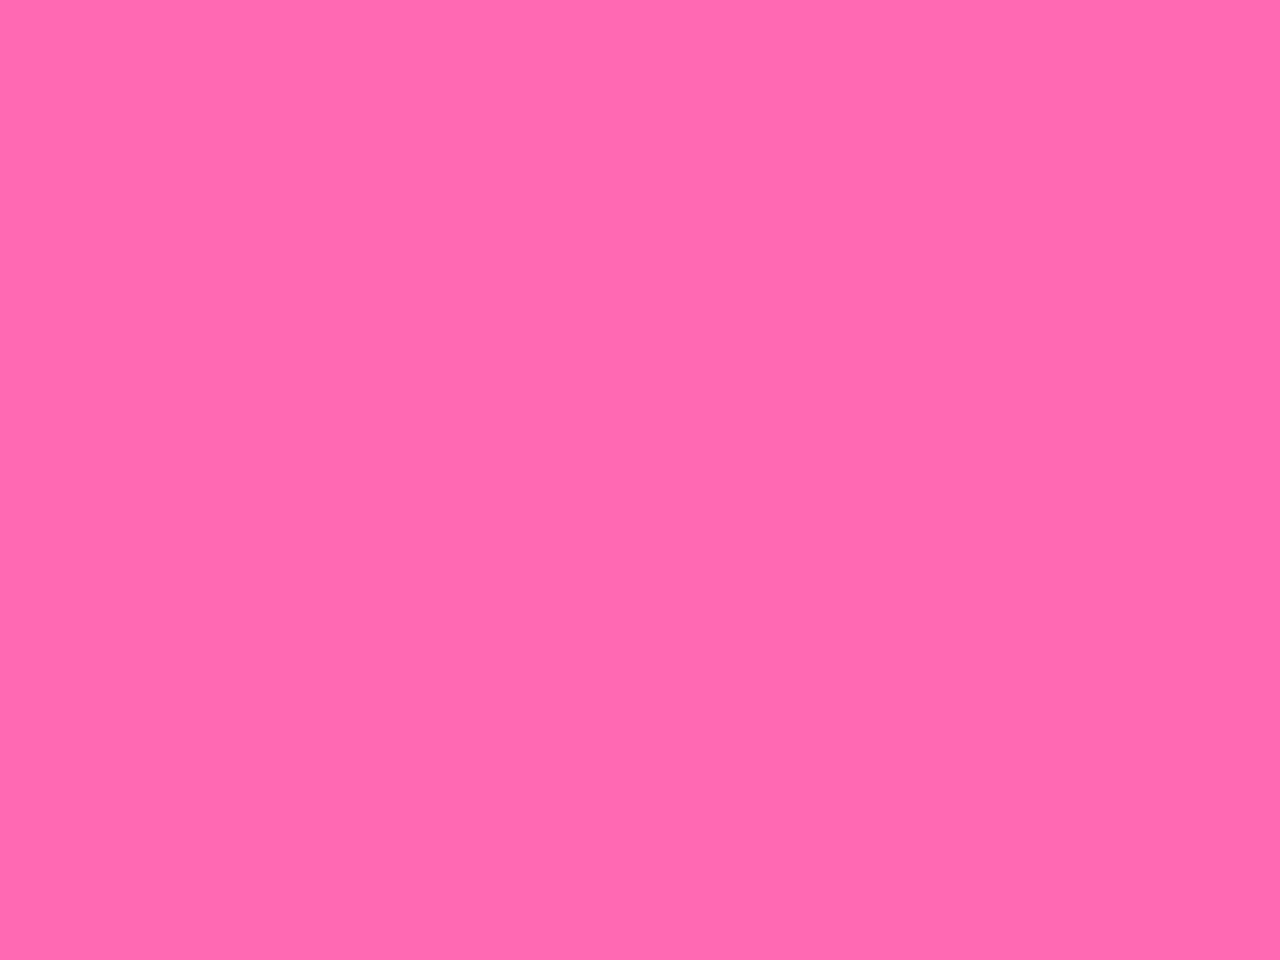 1280x960 Hot Pink Solid Color Background